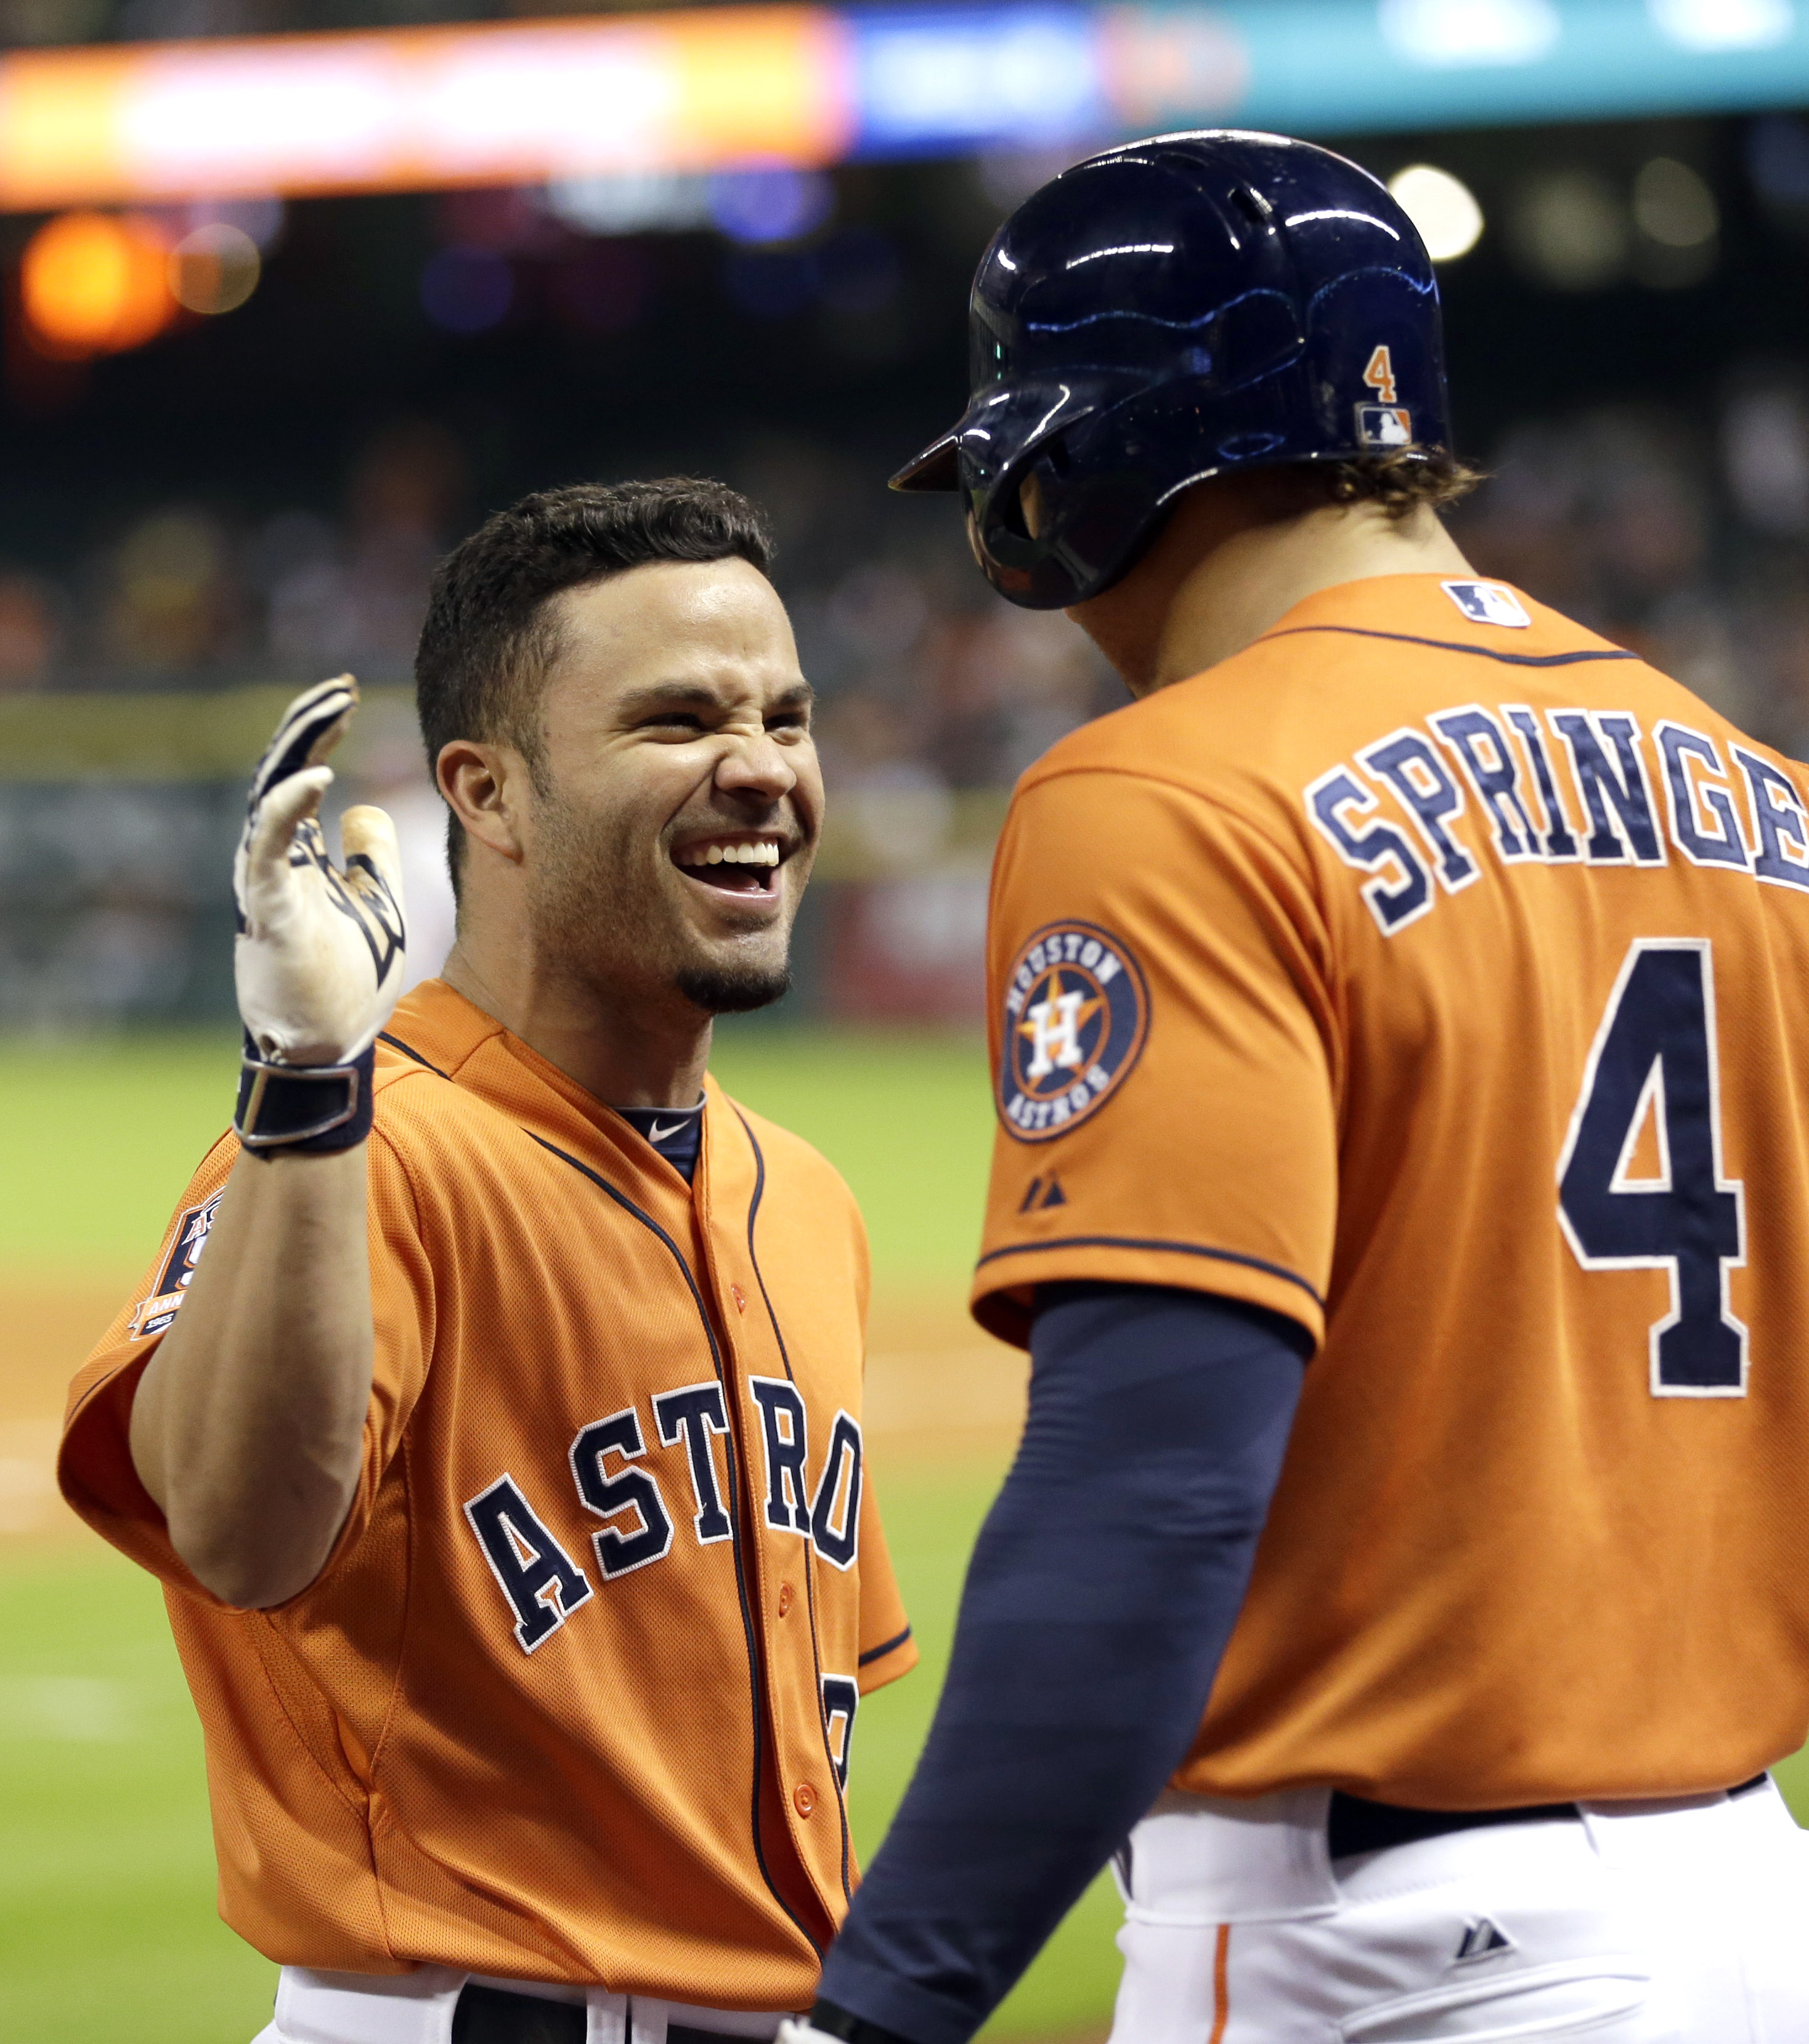 Houston Astros' Jose Altuve, left, celebrates his three-run home run with George Springer (4) during the fourth inning of a baseball game against the Toronto Blue Jays Friday, May 15, 2015, in Houston. (AP Photo/David J. Phillip)